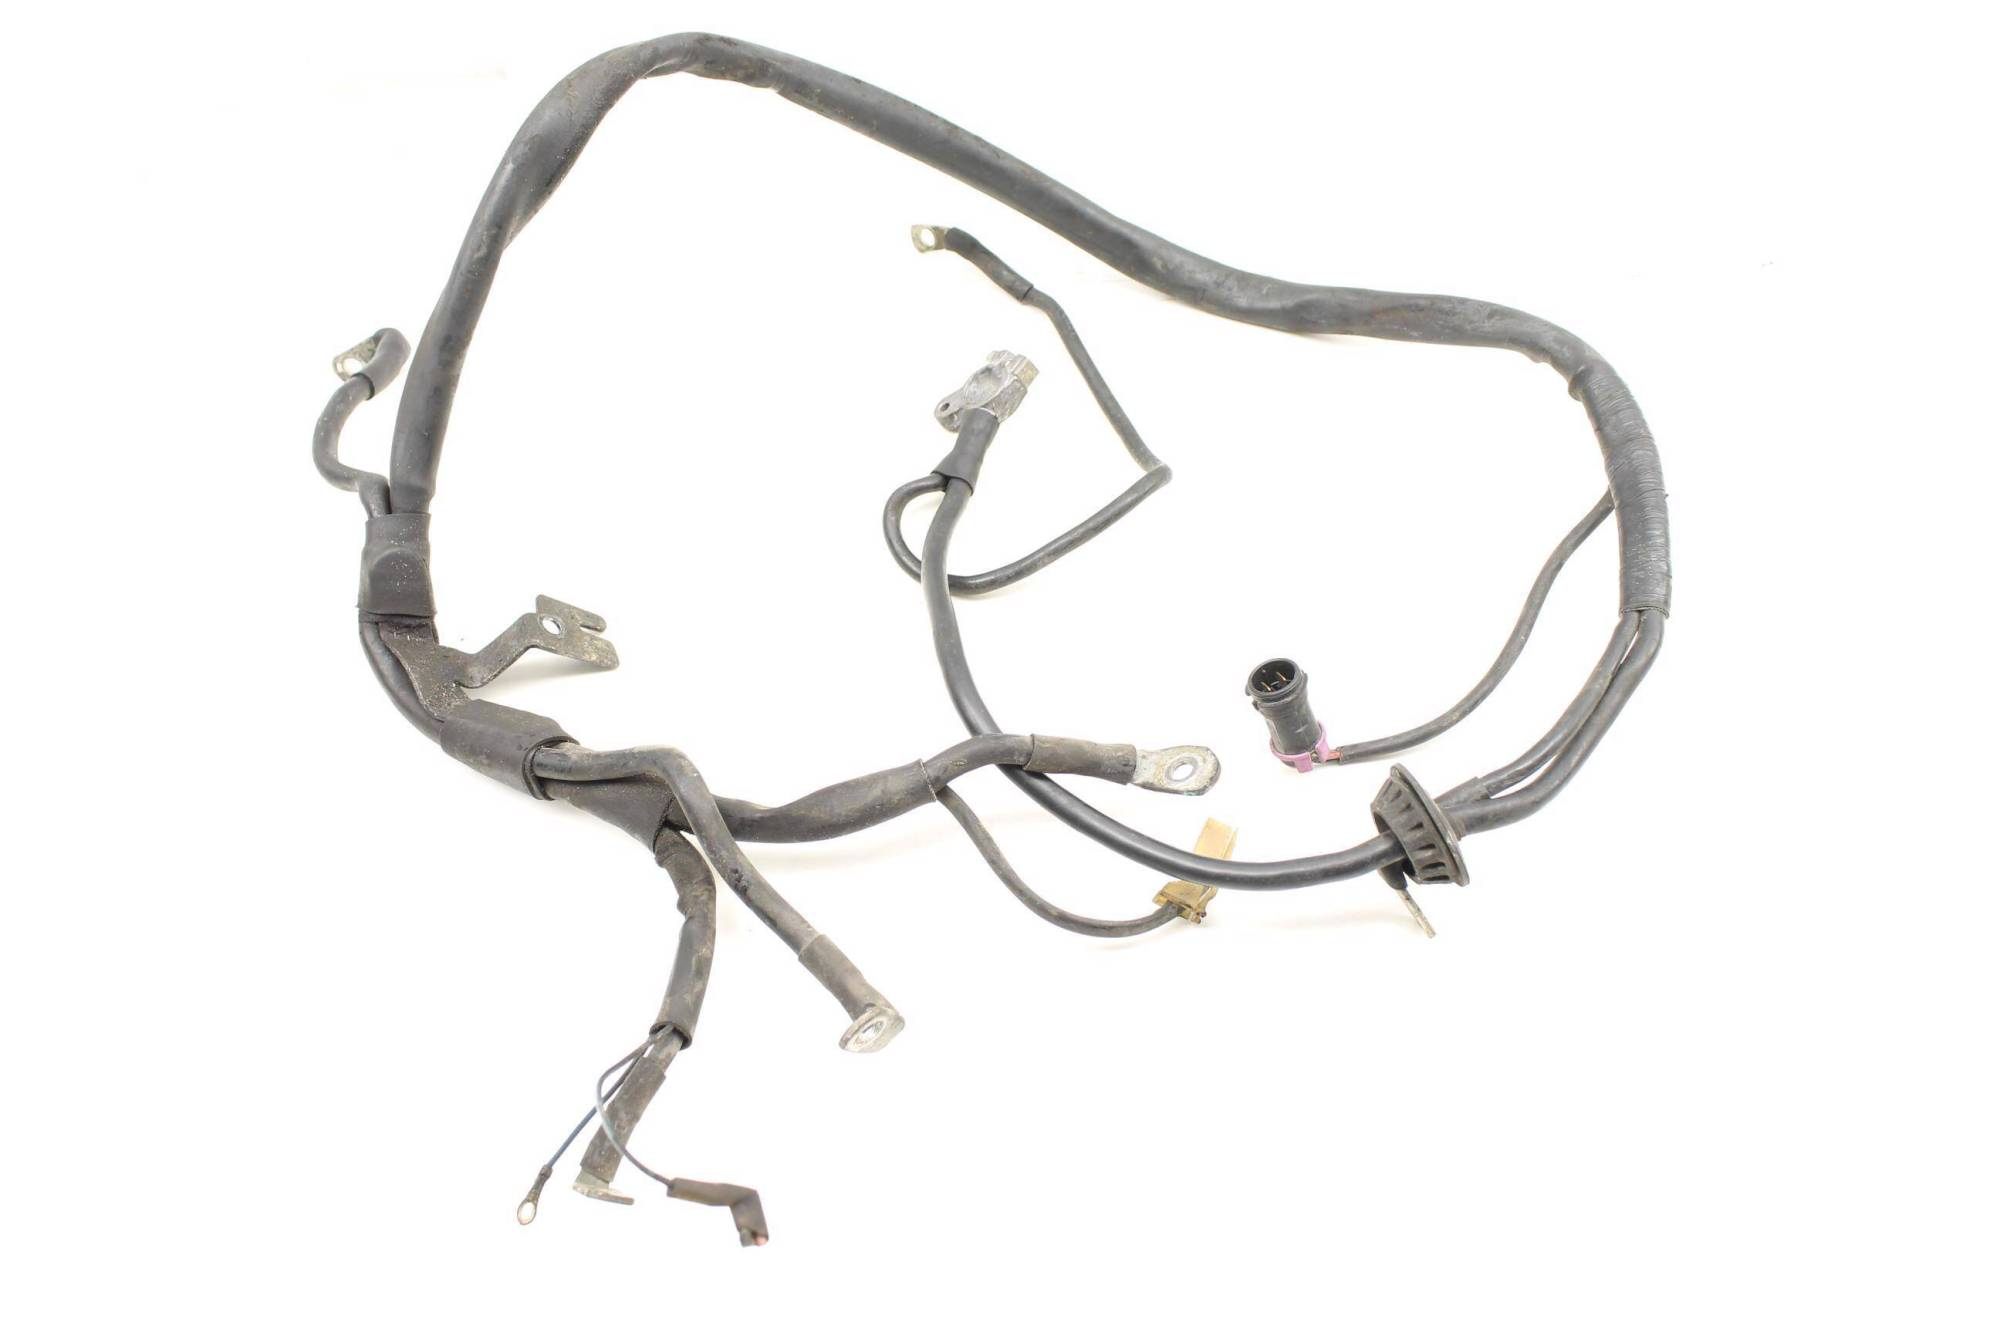 hight resolution of 2000 2001 audi a6 c5 4 2l positive battery cable alternator harness